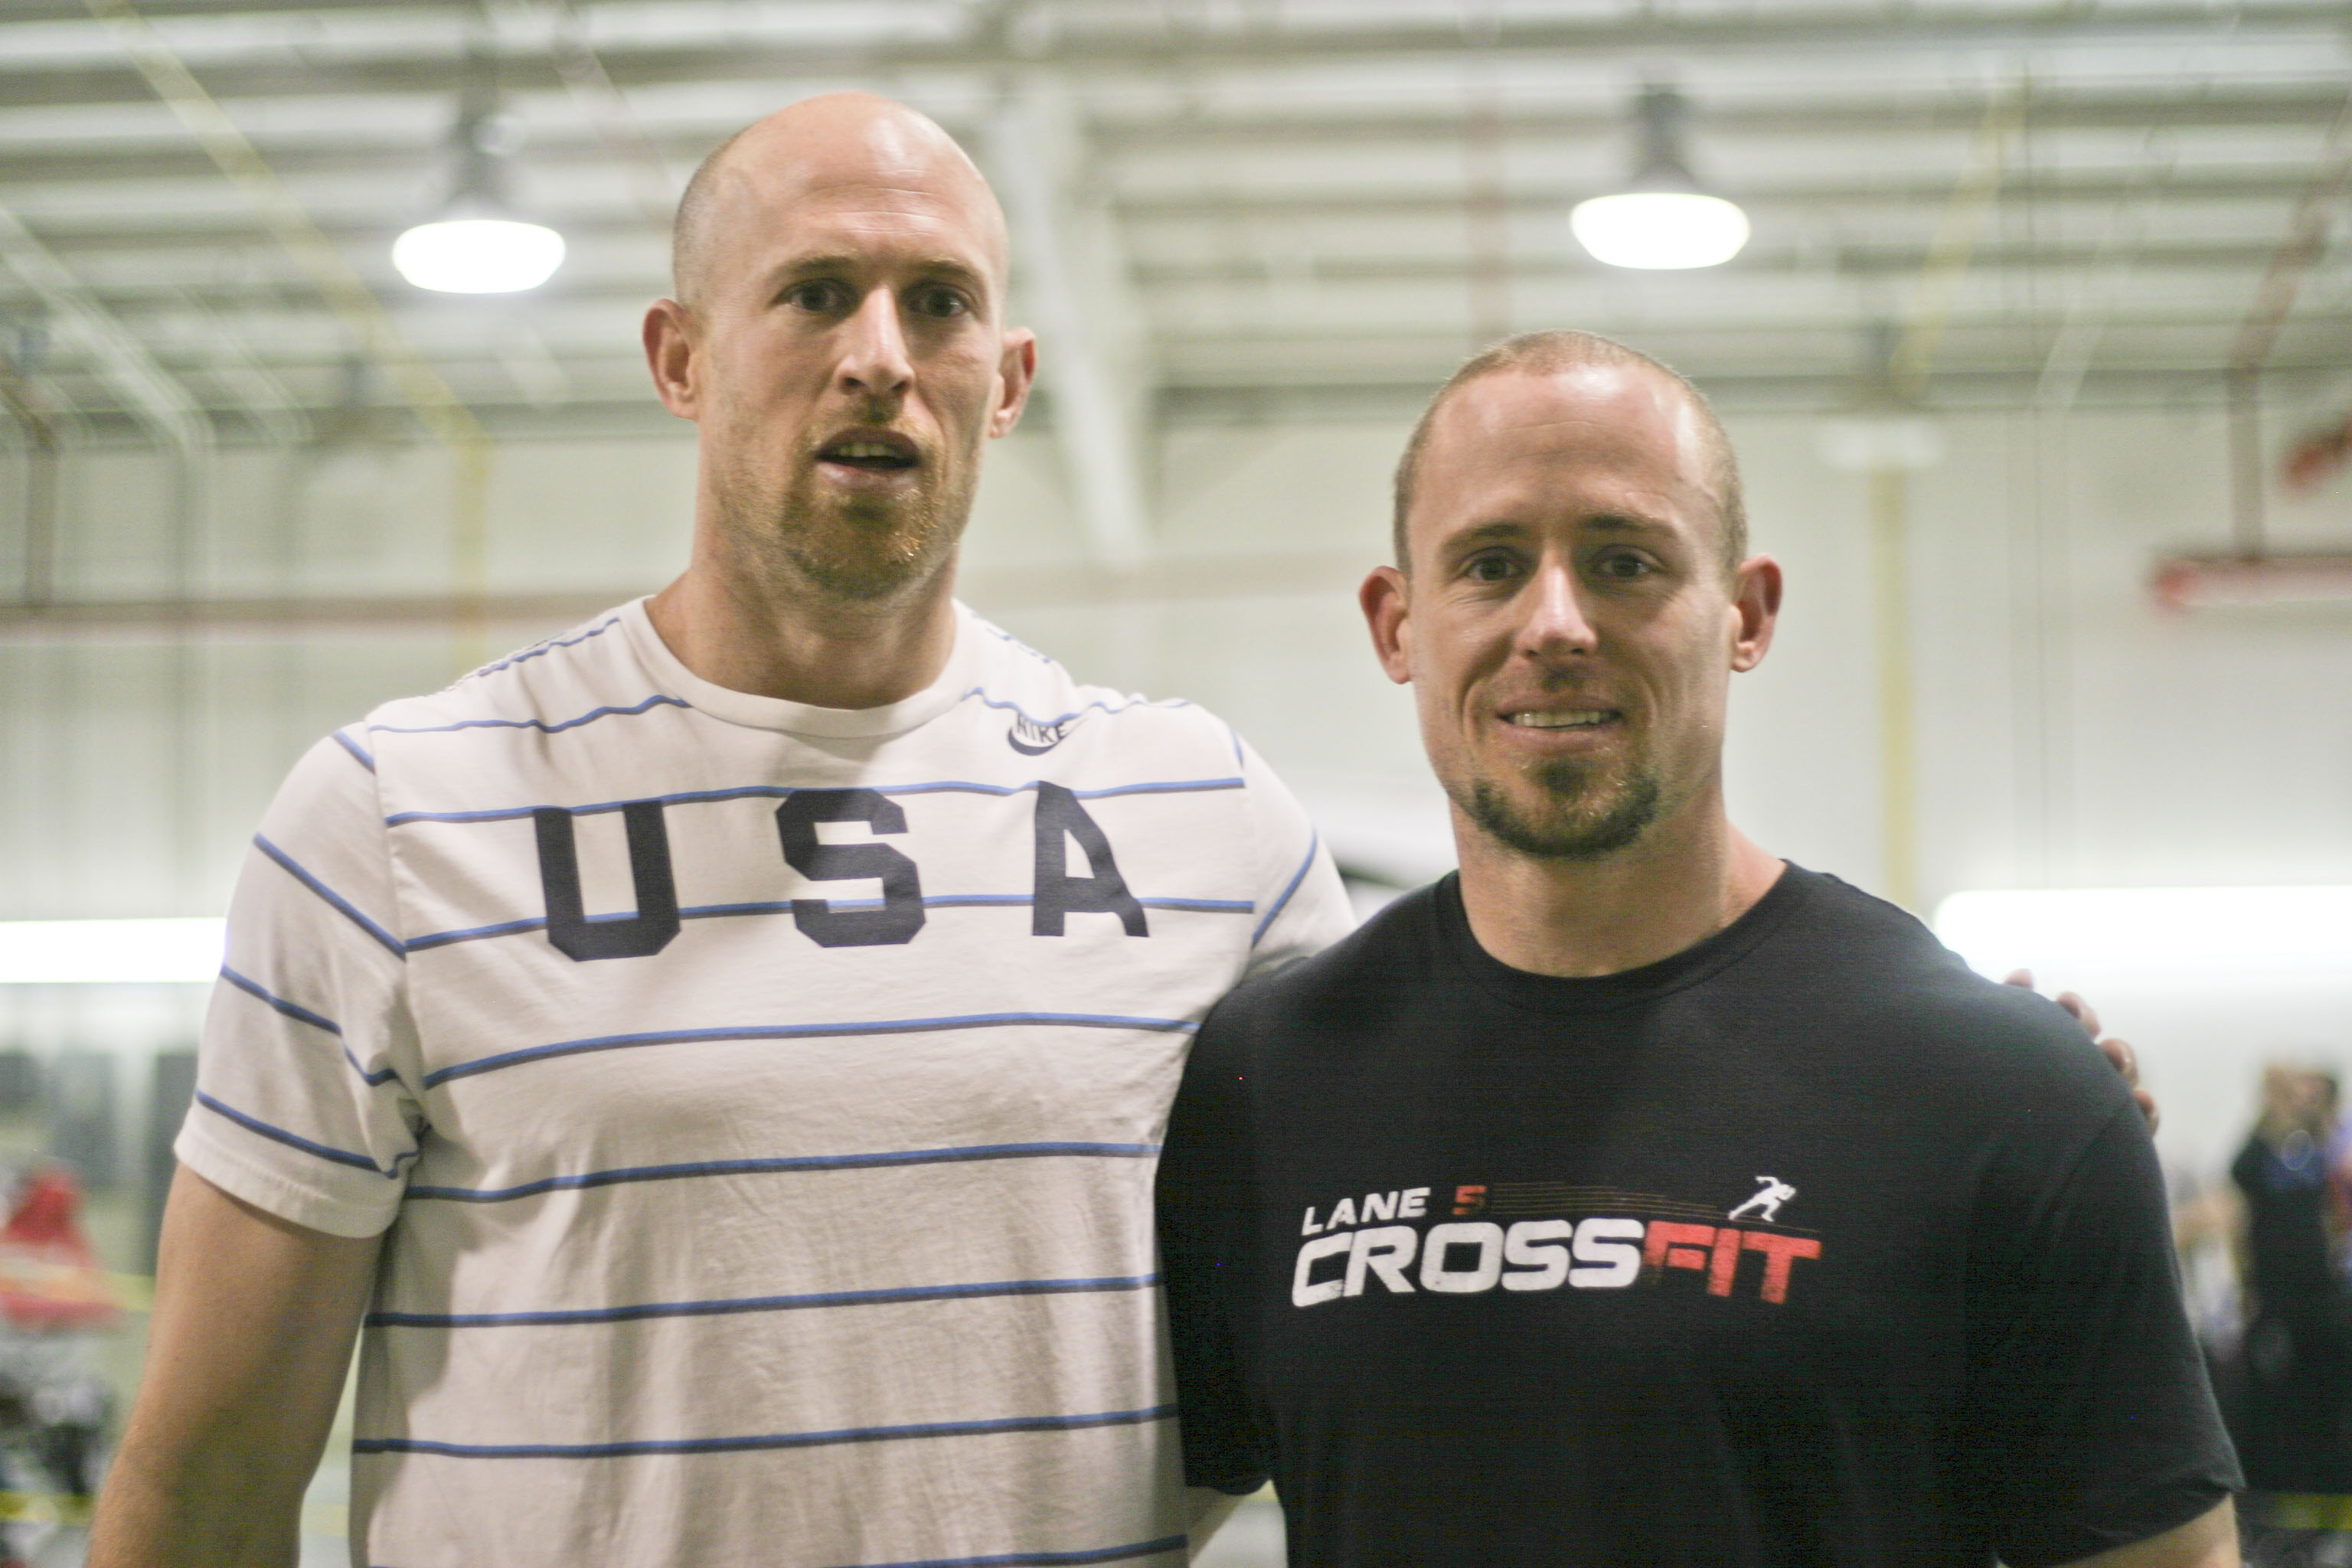 Tom and Billy at Lane 5 Crossfit